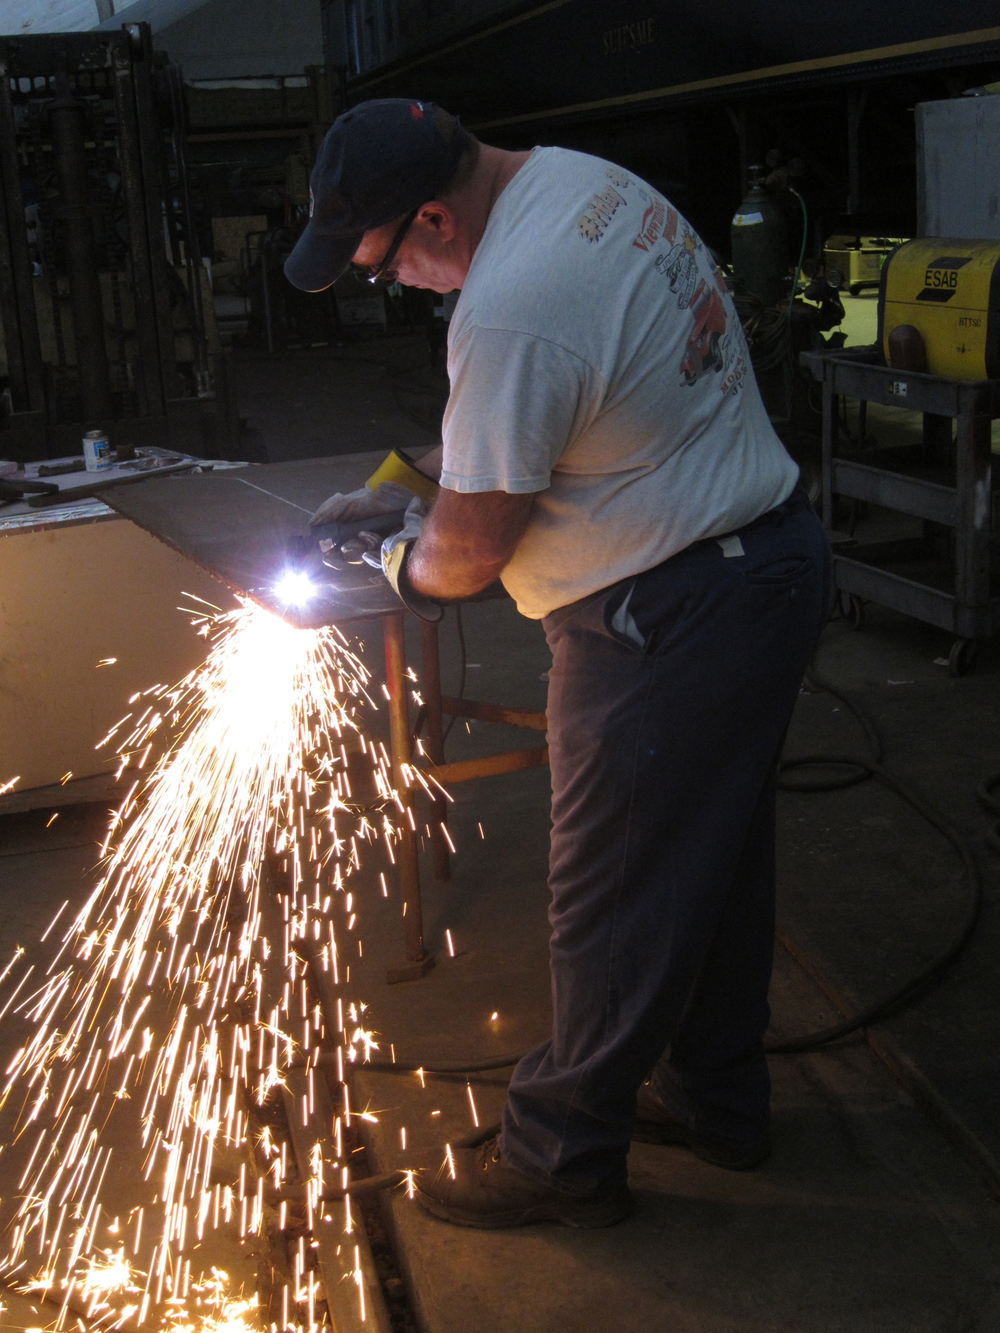 Welding, Cutting, & Body Work